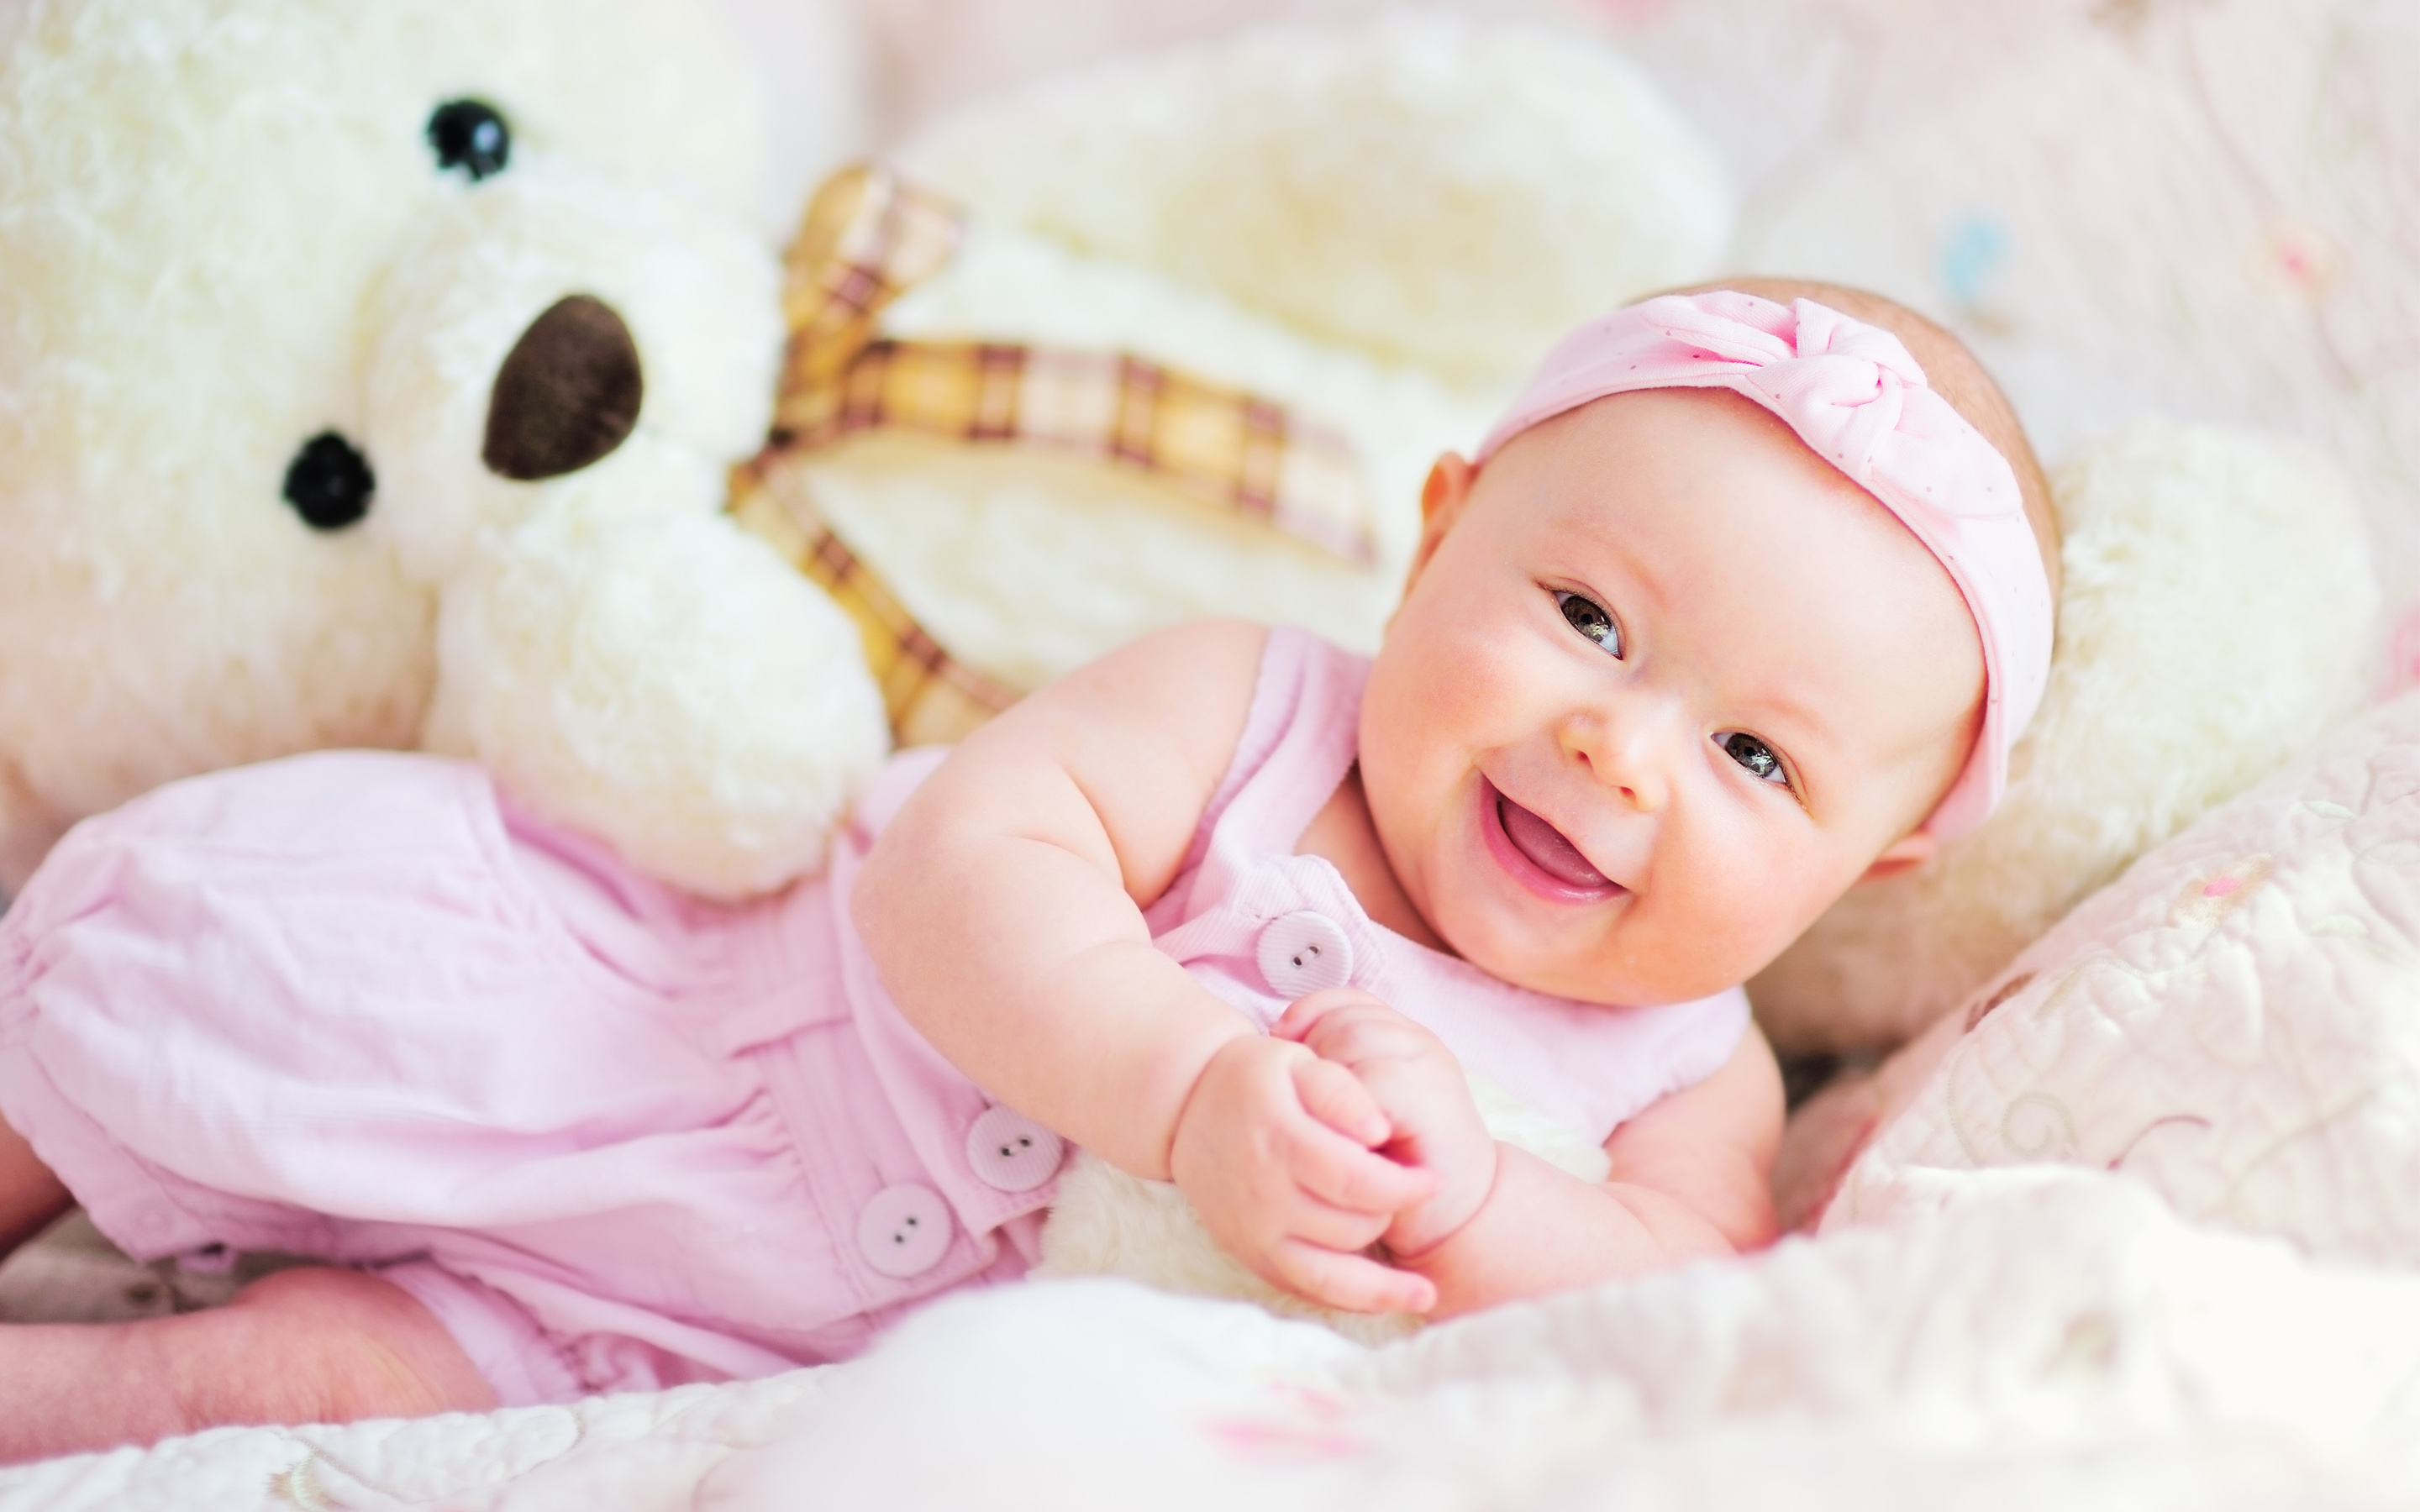 Wallpaper 4k Cute Baby Teddy Bear Baby Bear Child Cute Teddy